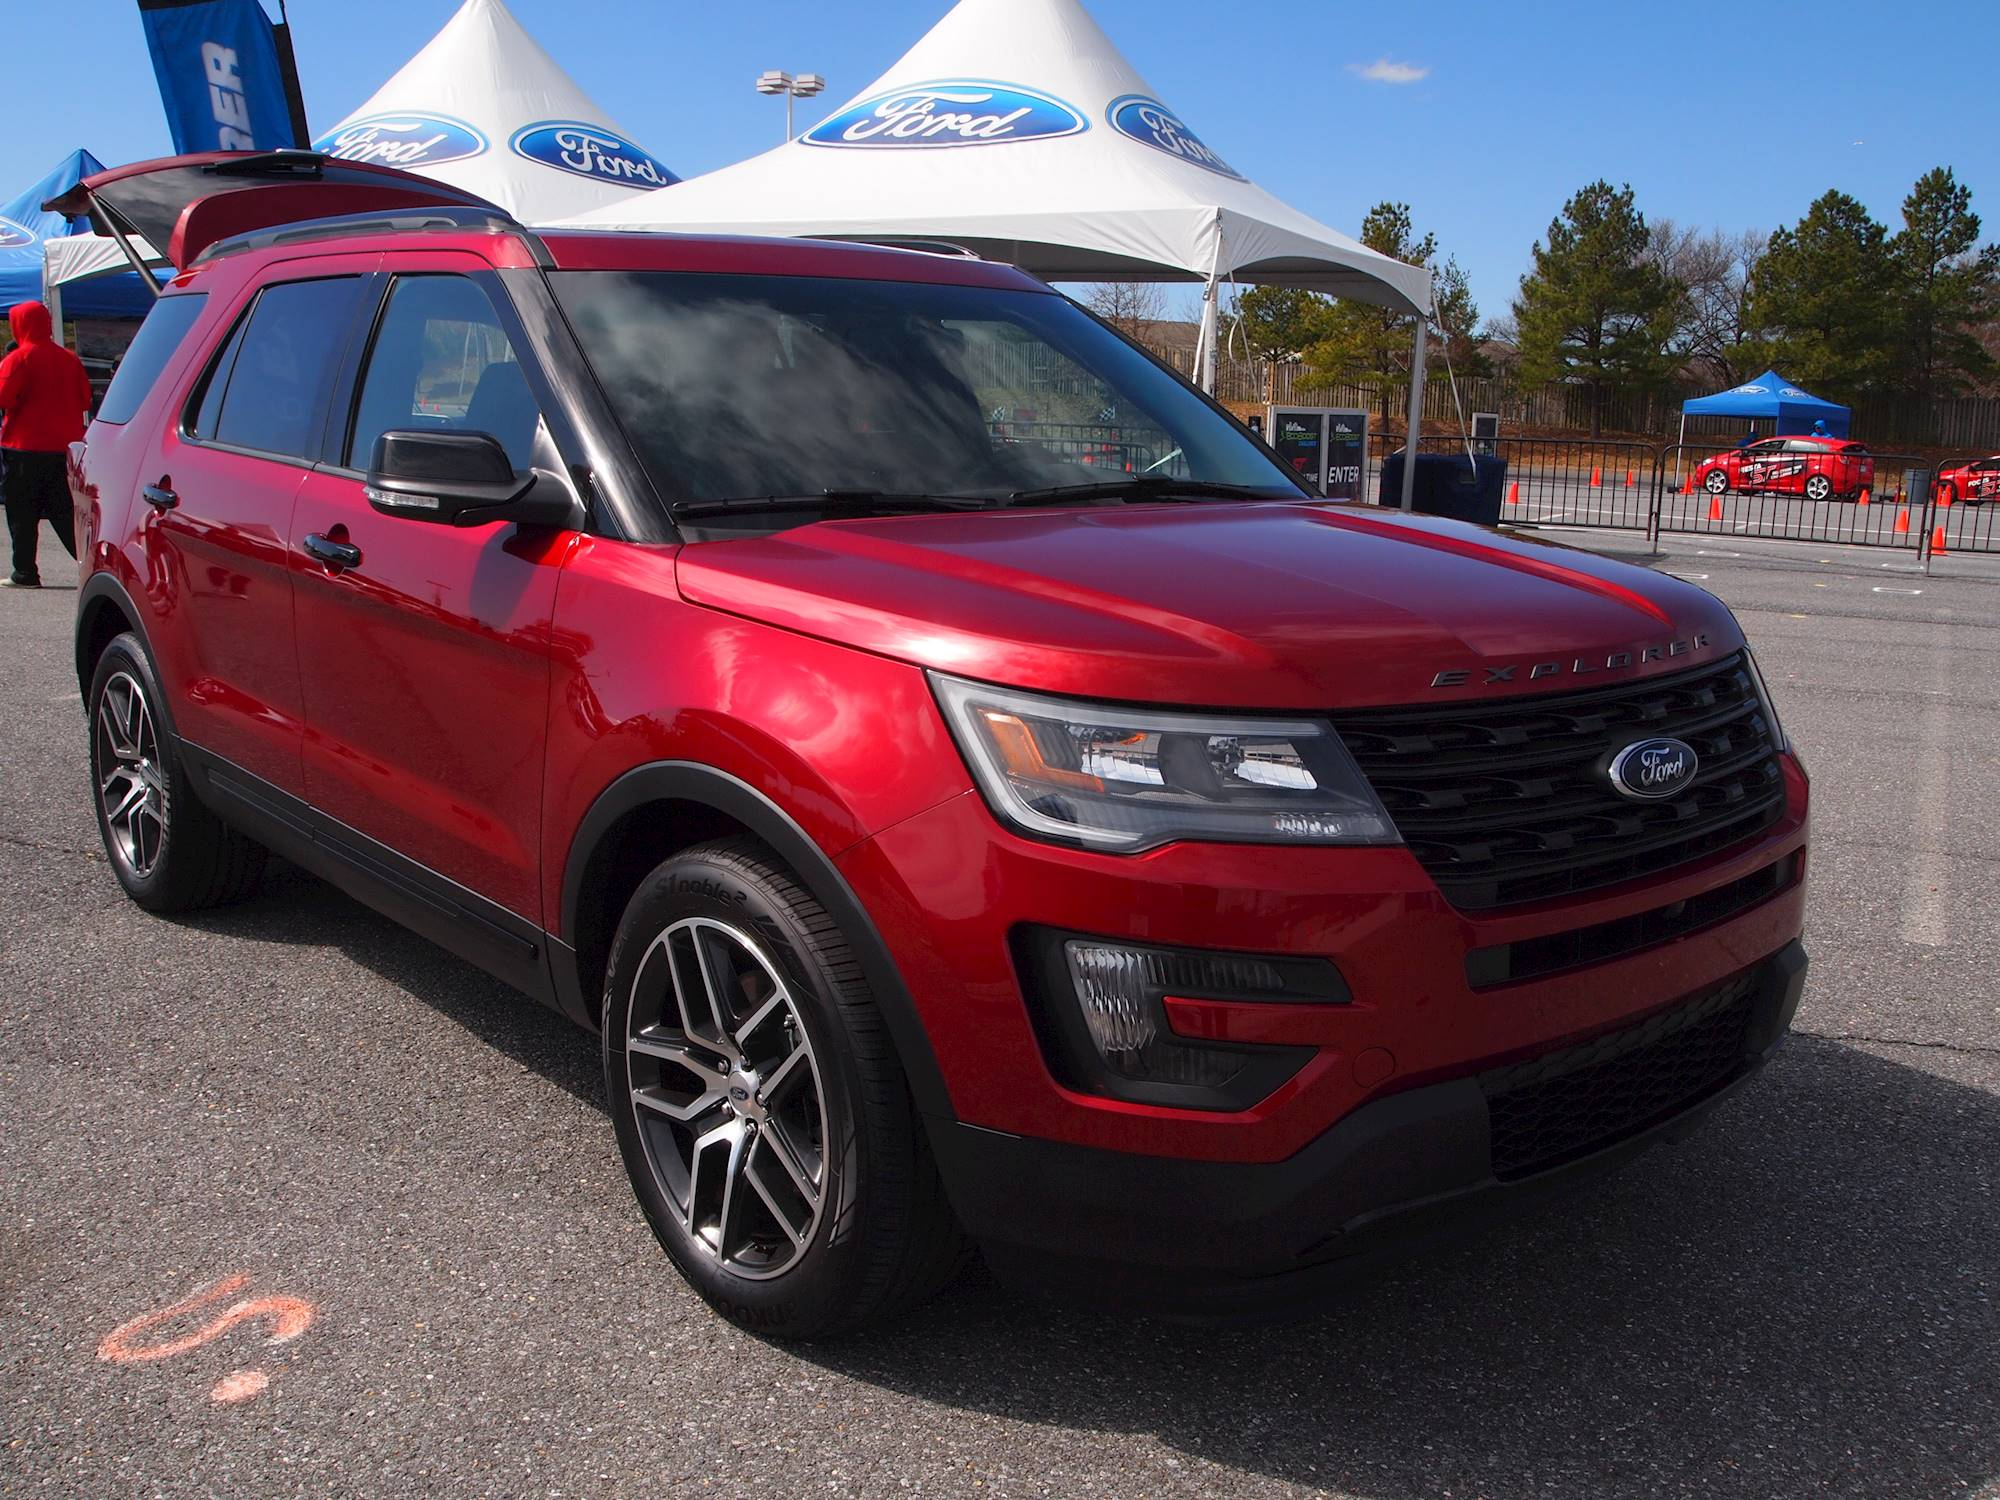 2017 Ford Explorer Mpg >> 2017 Ford Explorer Base 4WD